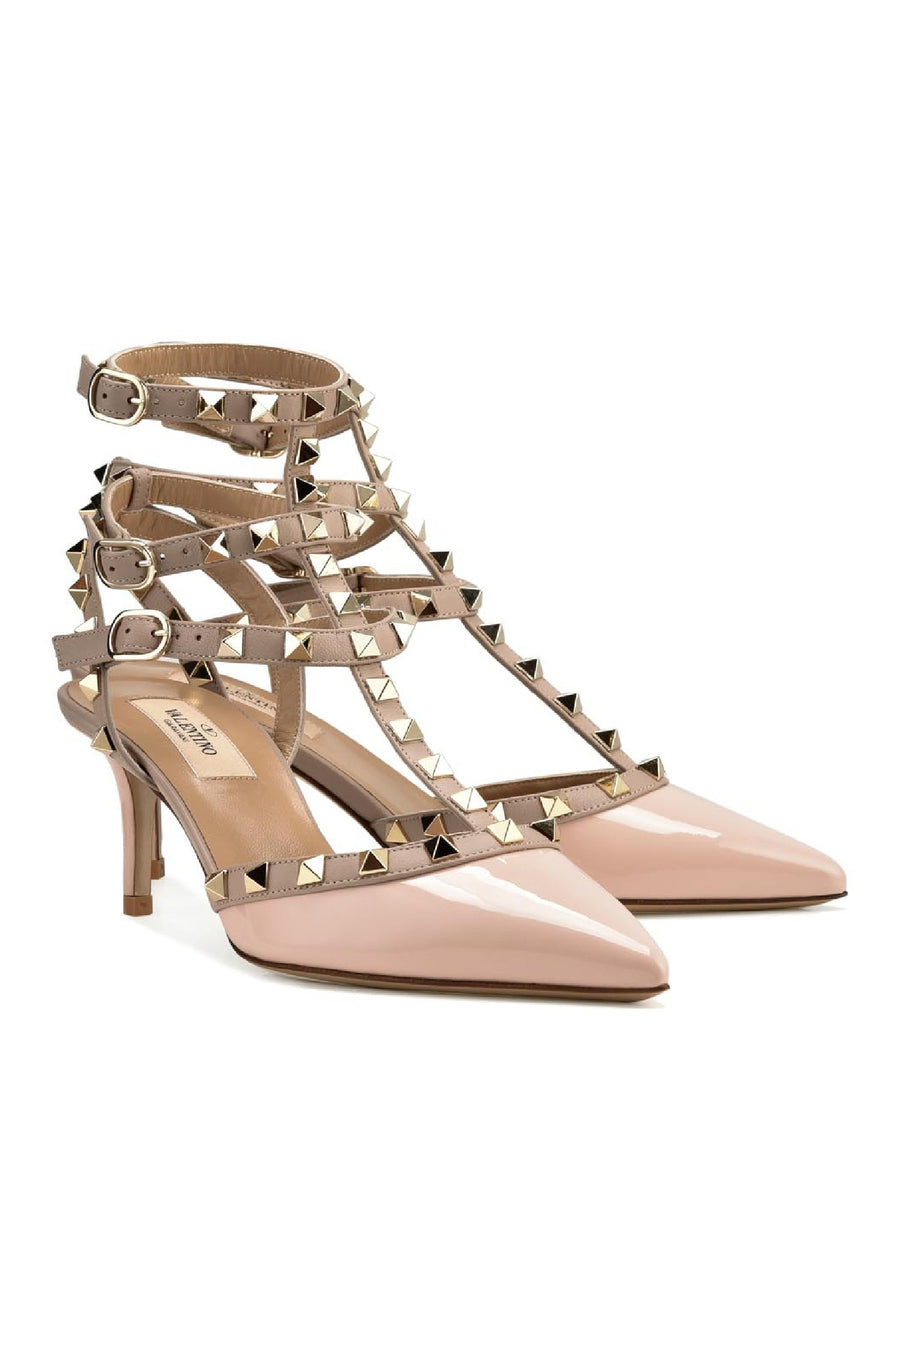 Rockstud Ankle Strap Women Fashion Valentino Calf-Leather High-heel Stunning